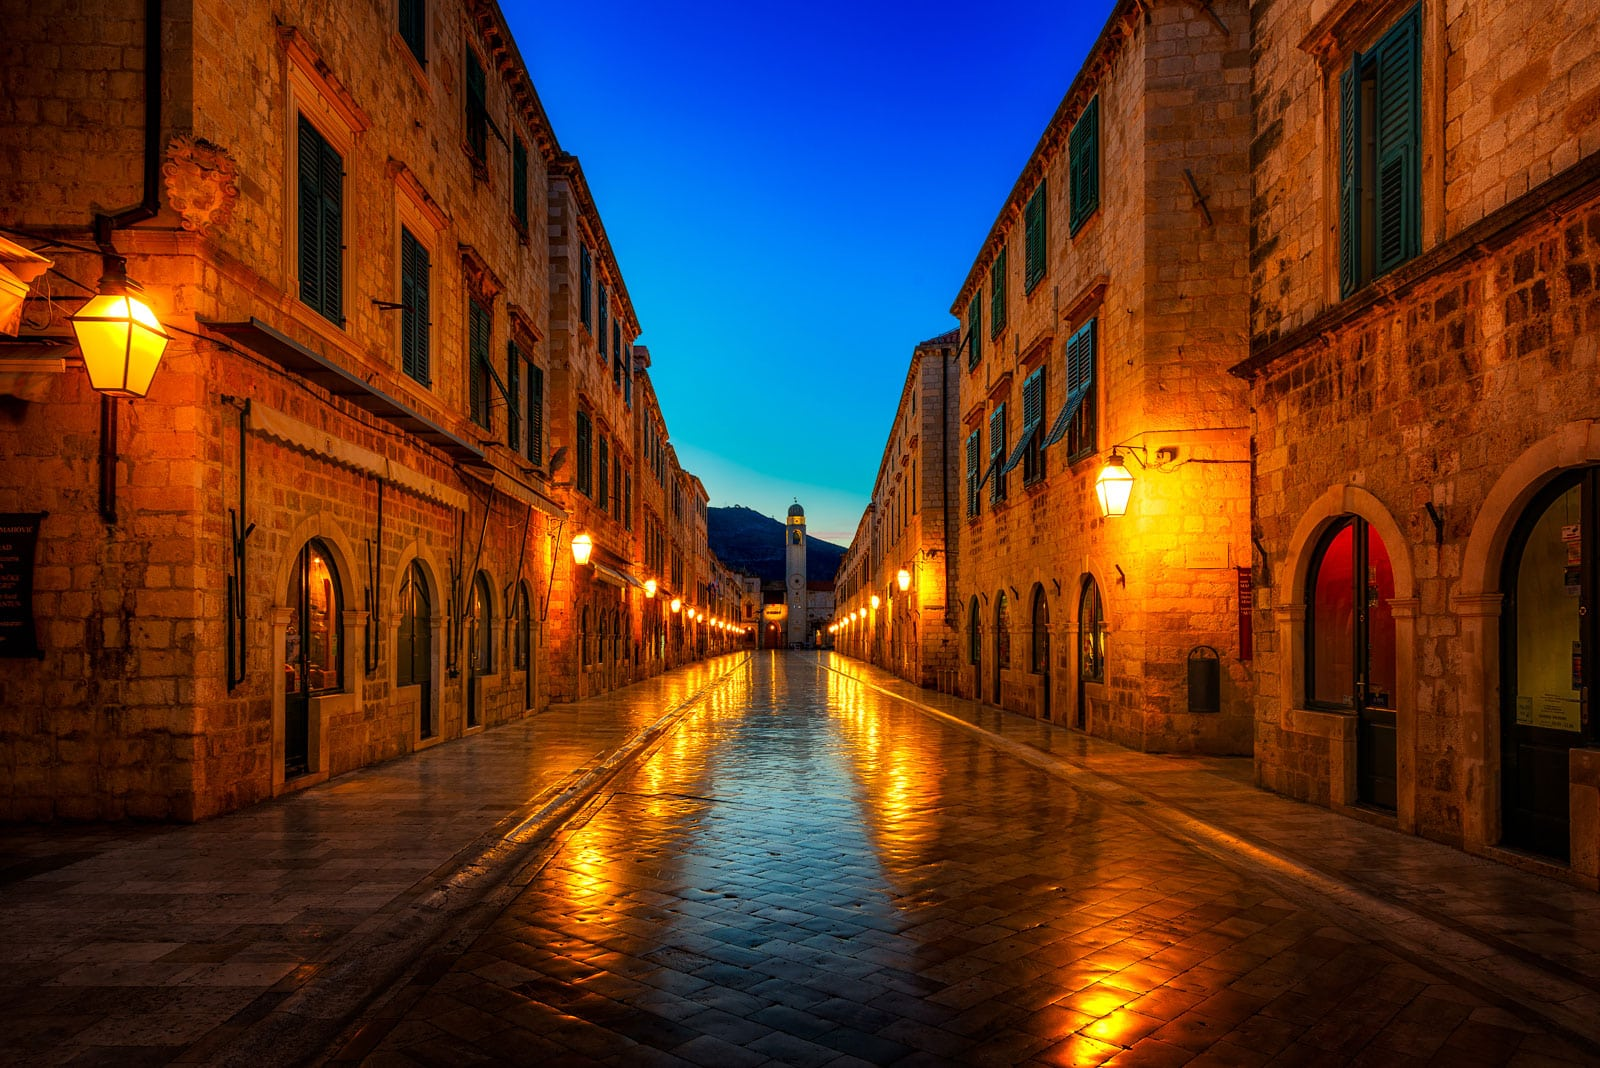 Dubrovnik at night | Dubrovnik, Croatia